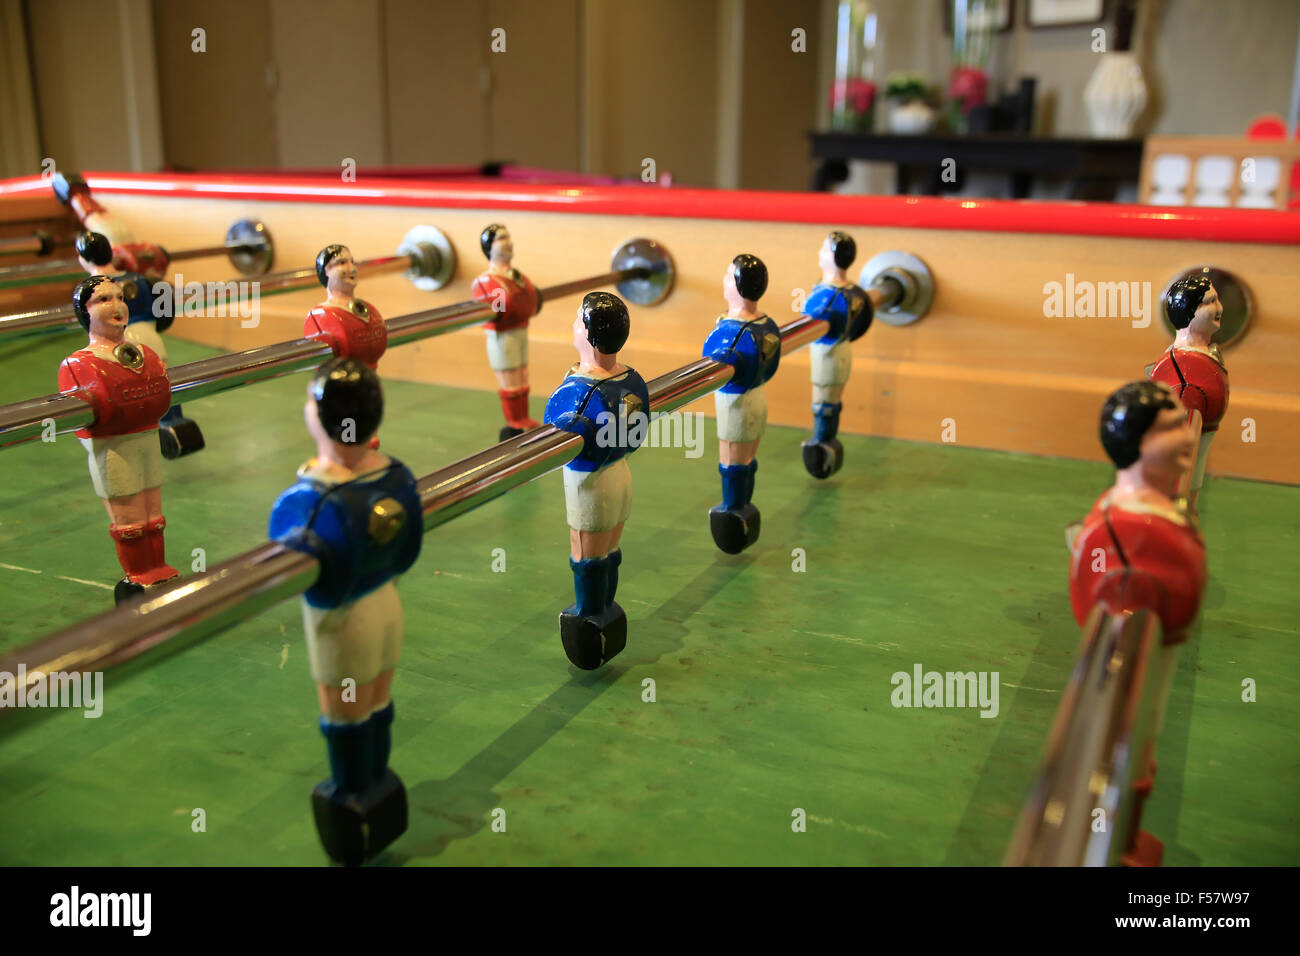 Close up of Table Football players - Stock Image